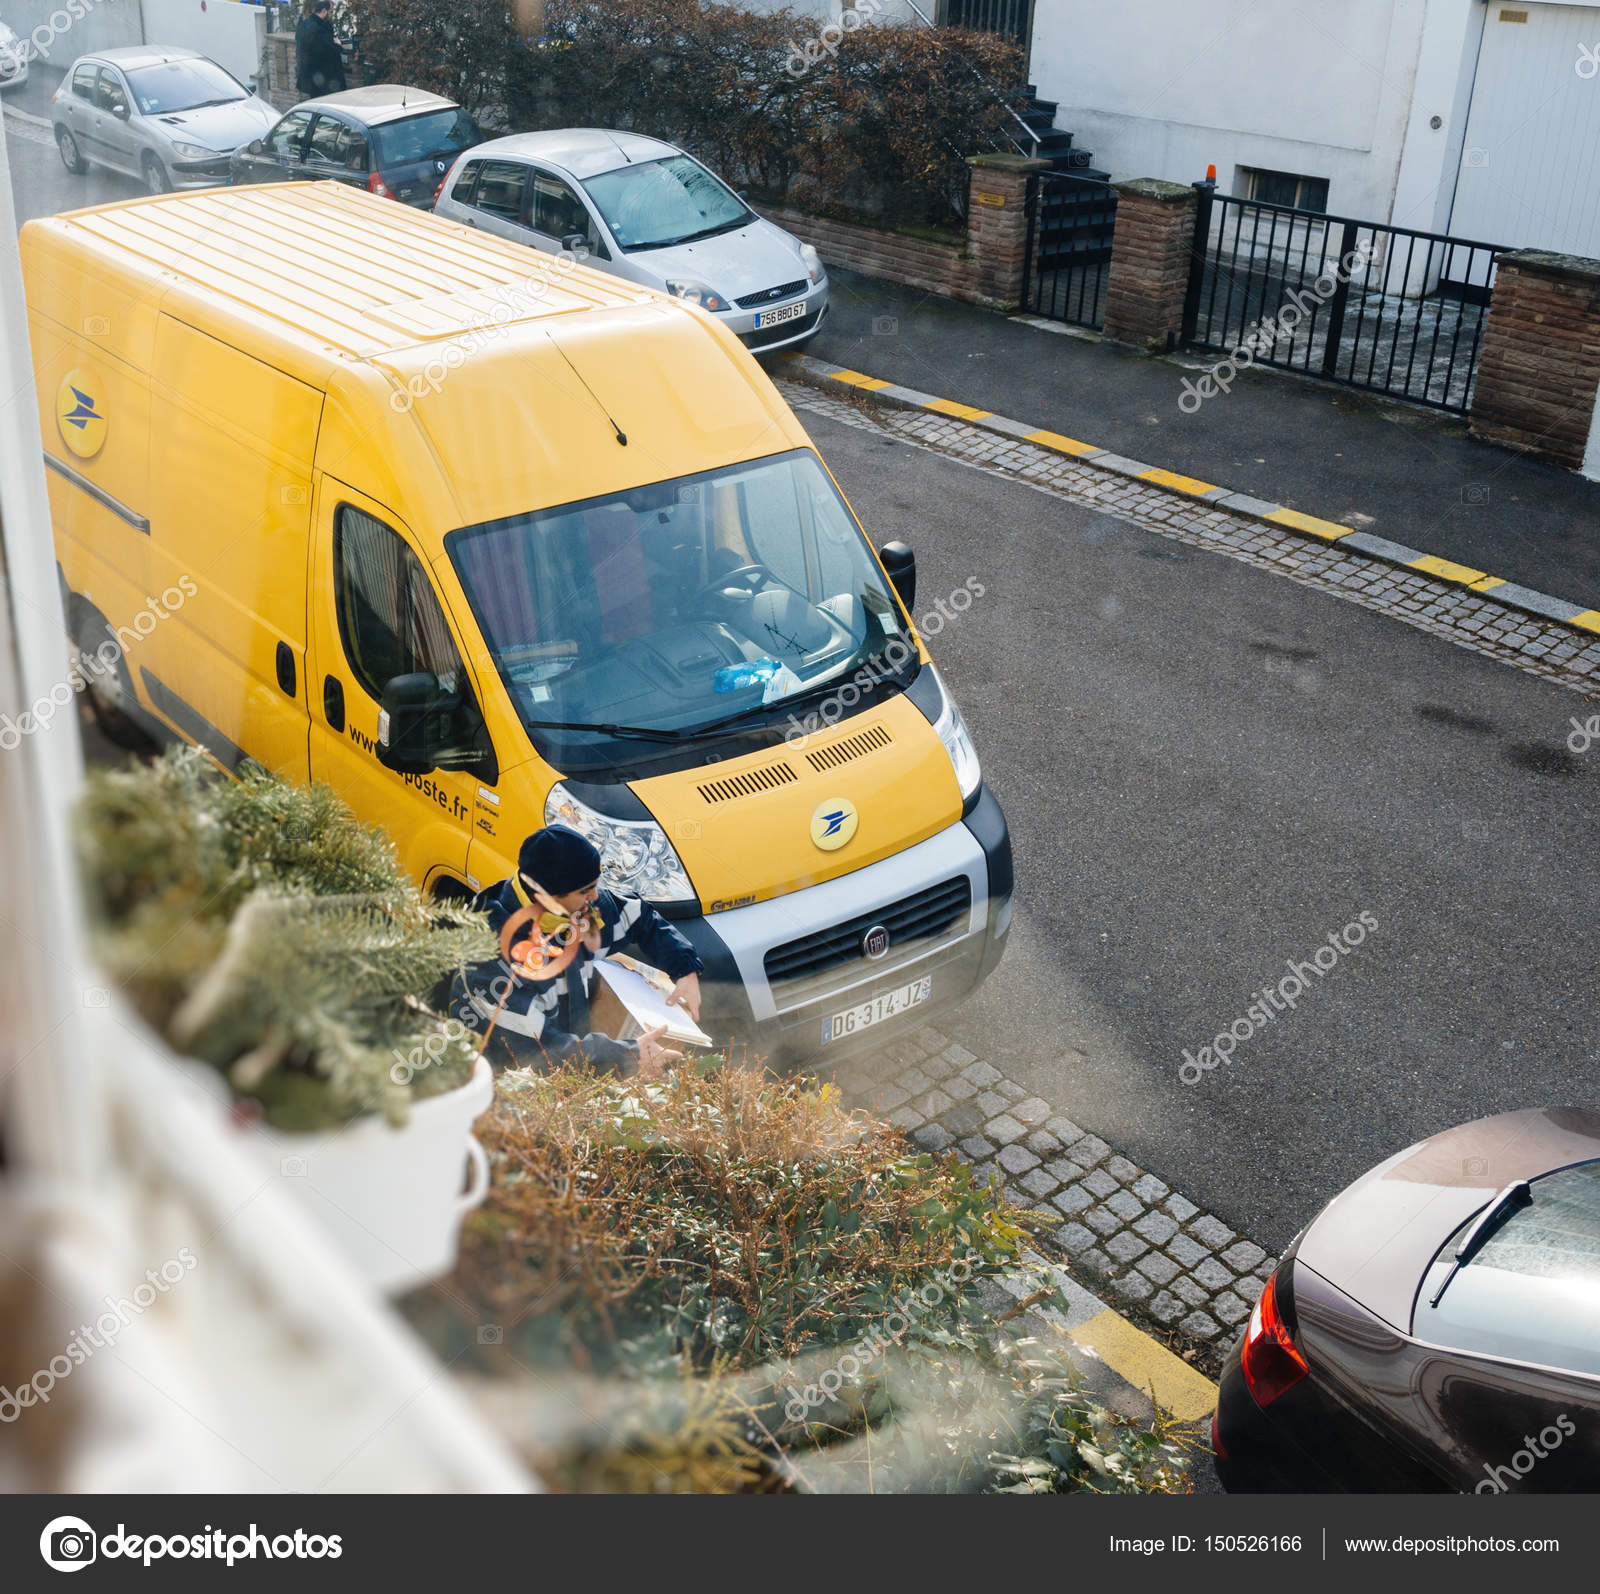 36e6367a3d Parcel delivery by postal worker – Stock Editorial Photo ...